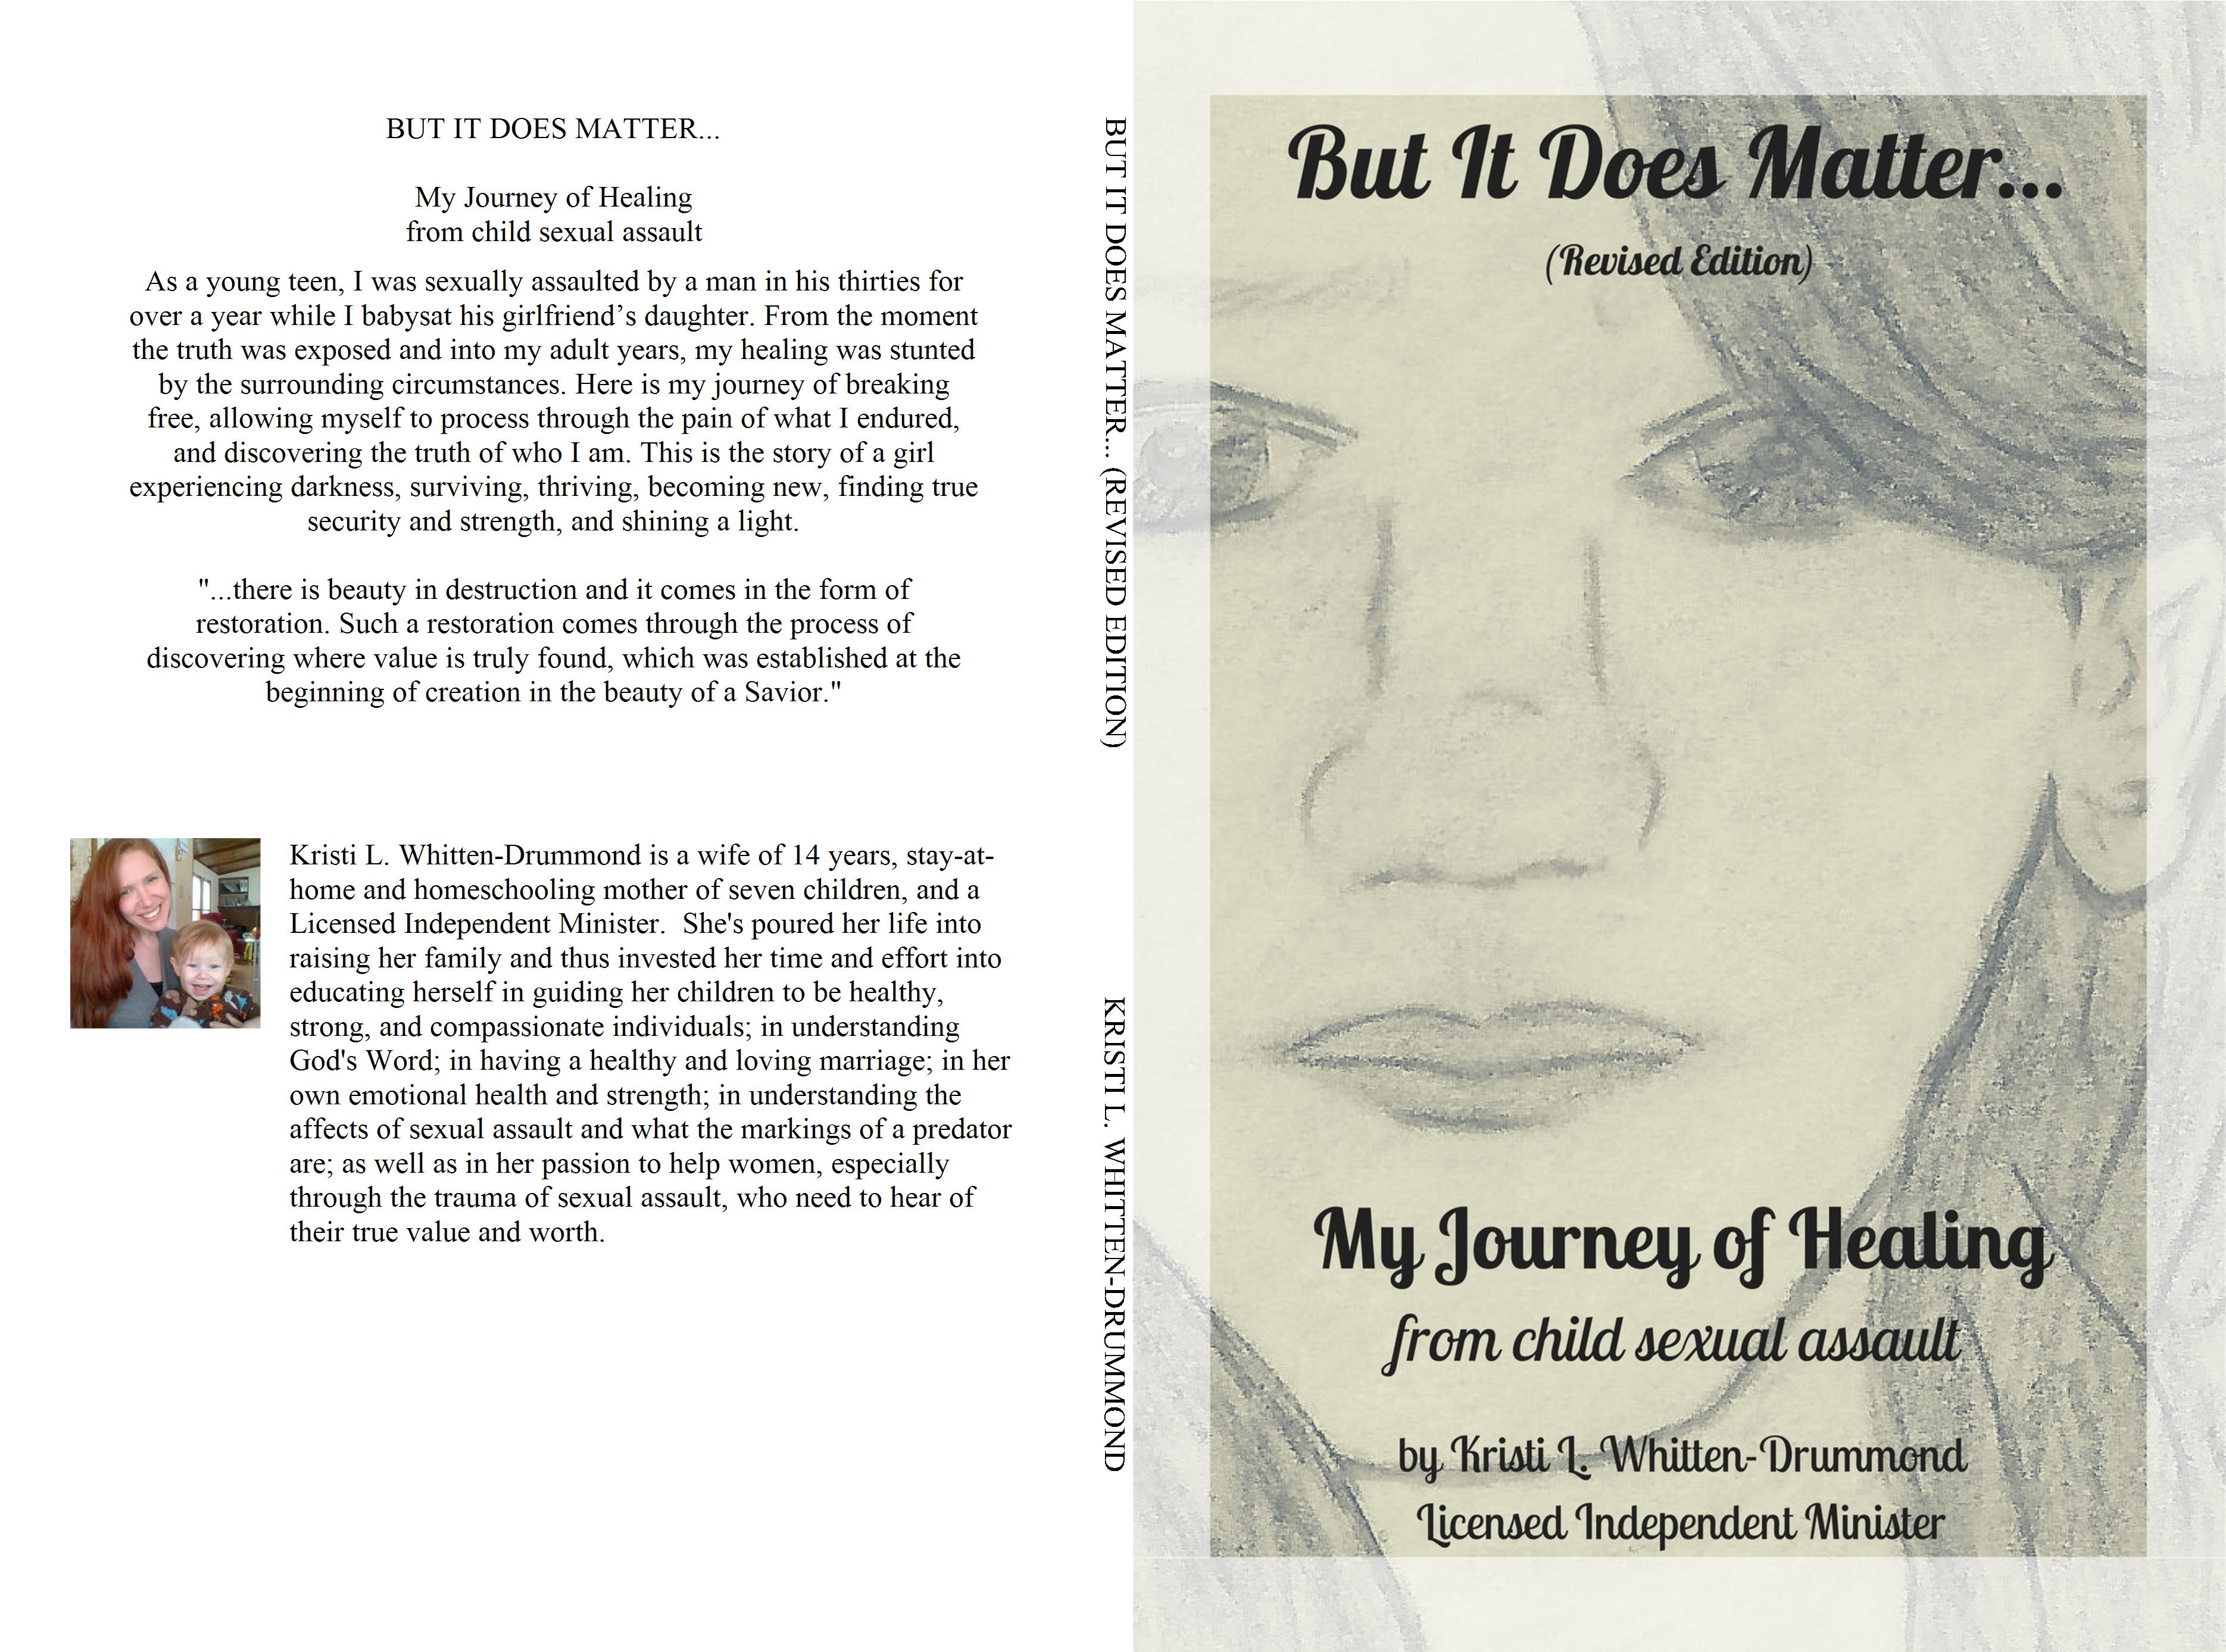 But It Does Matter... (Revised Edition) cover image